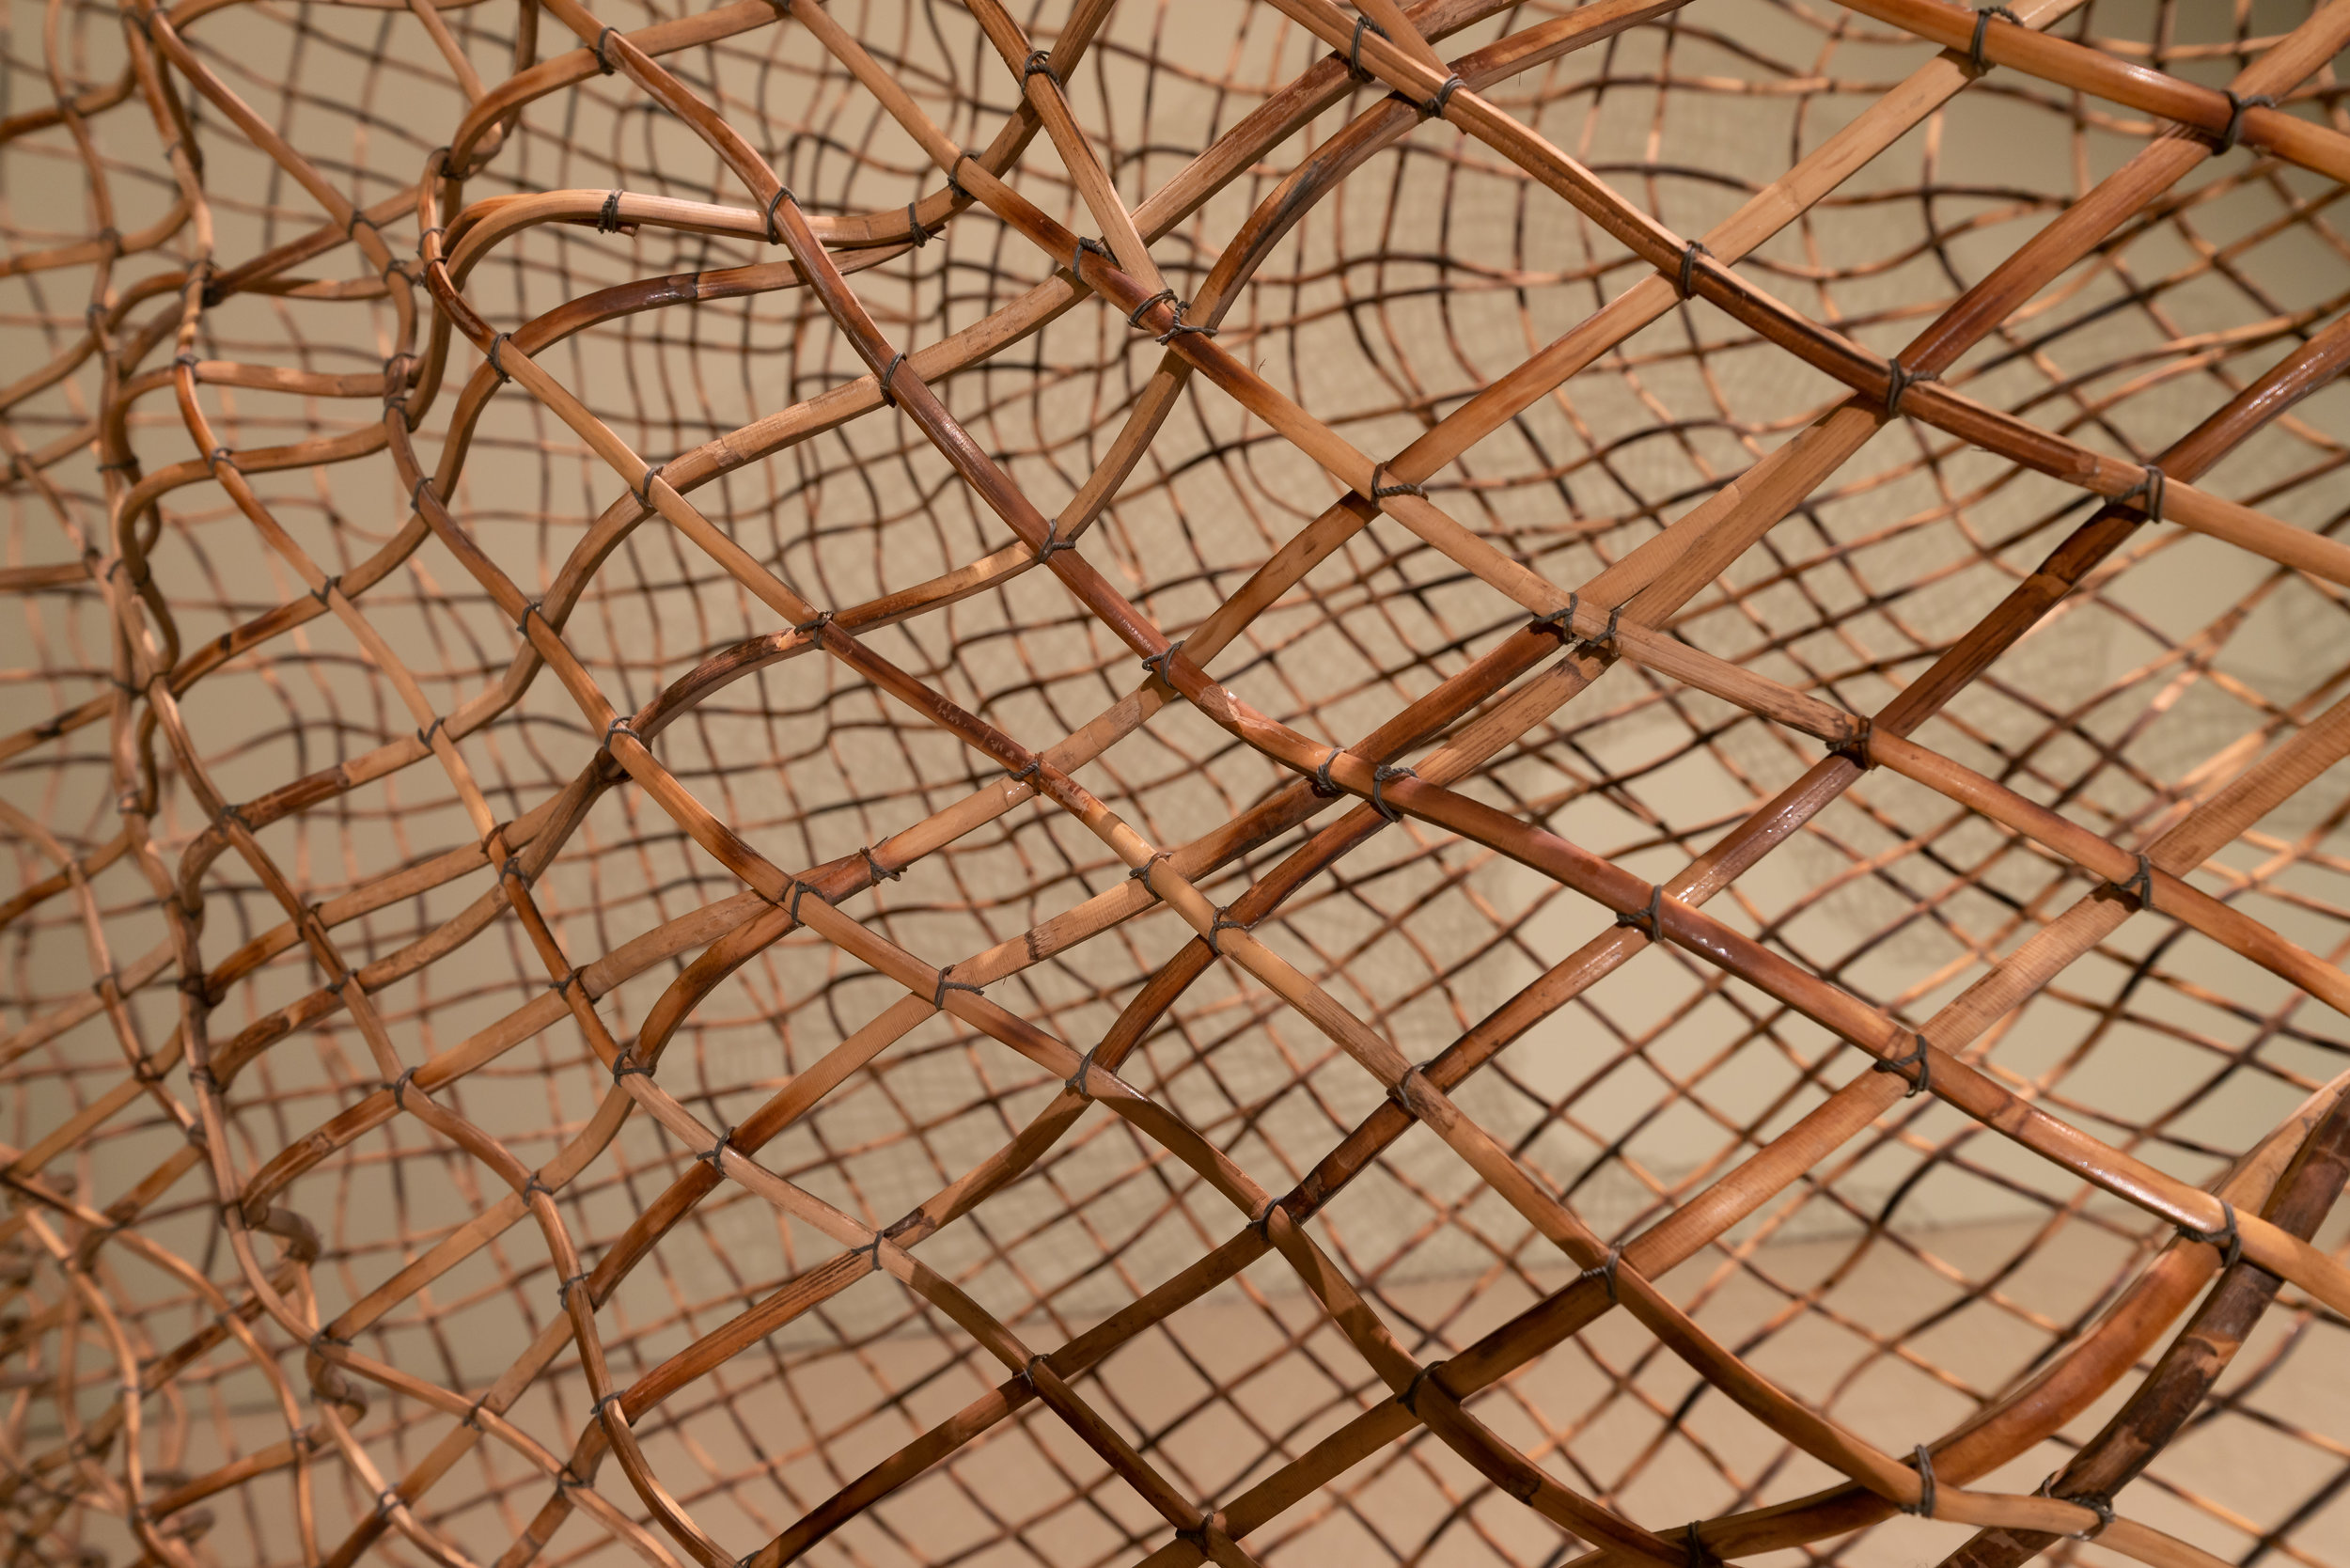 Delta , Sopheap Pich 2007,   Detail  Credit: NTU CCA Singapore and The MaGMA Collection